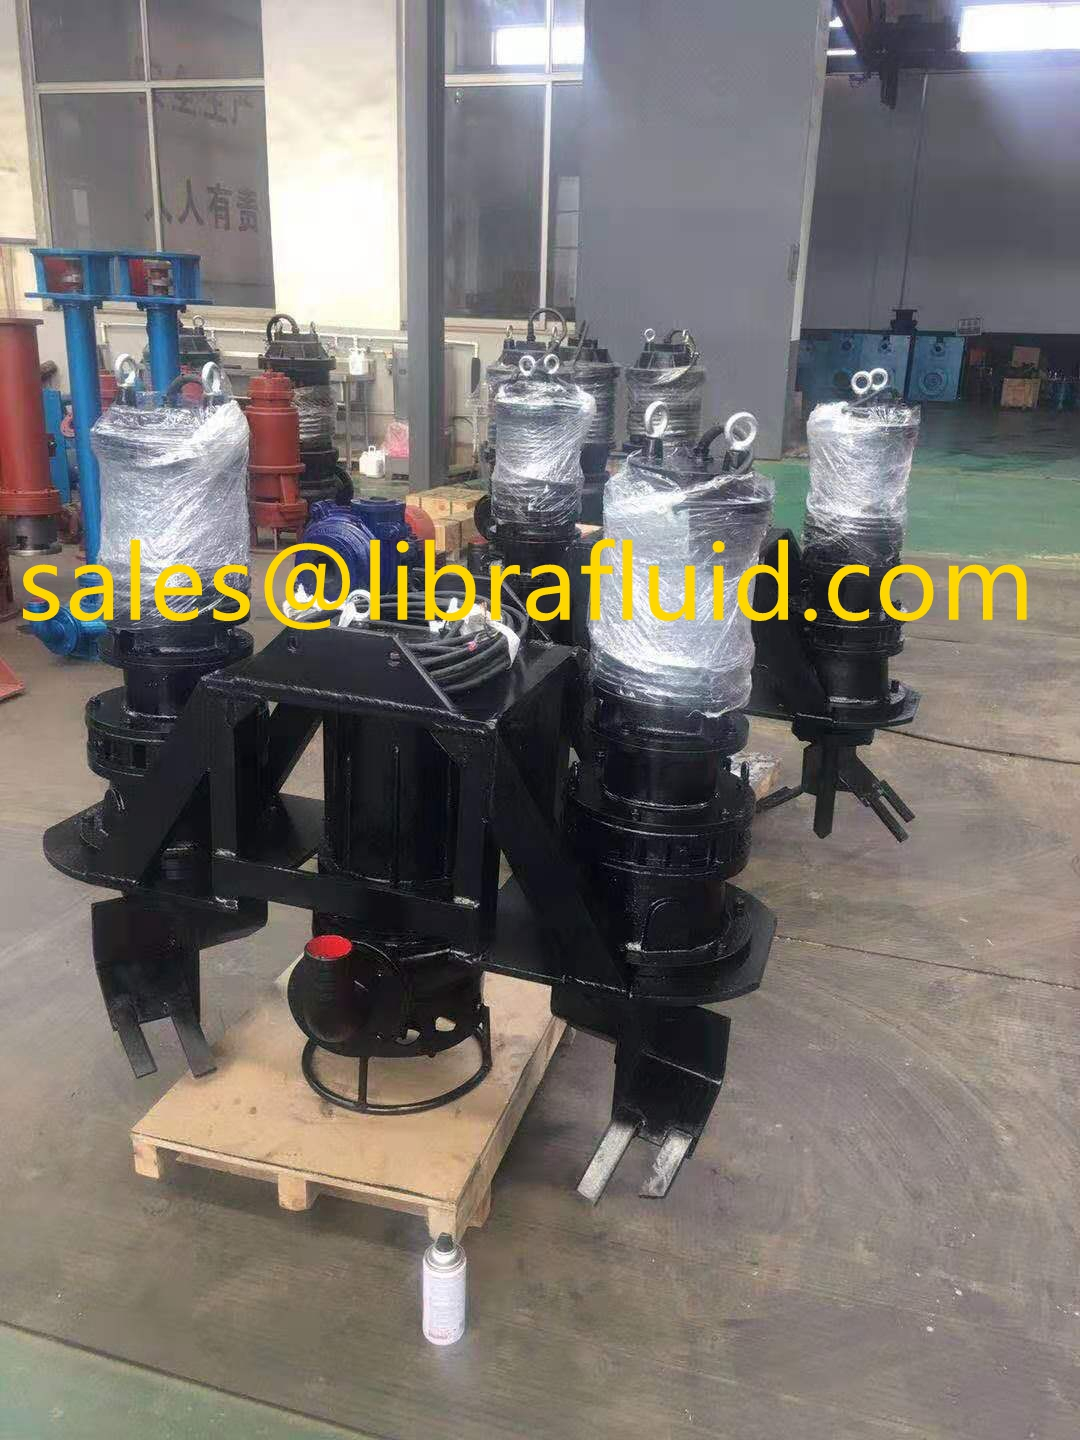 7.5kw submersible slurry pump